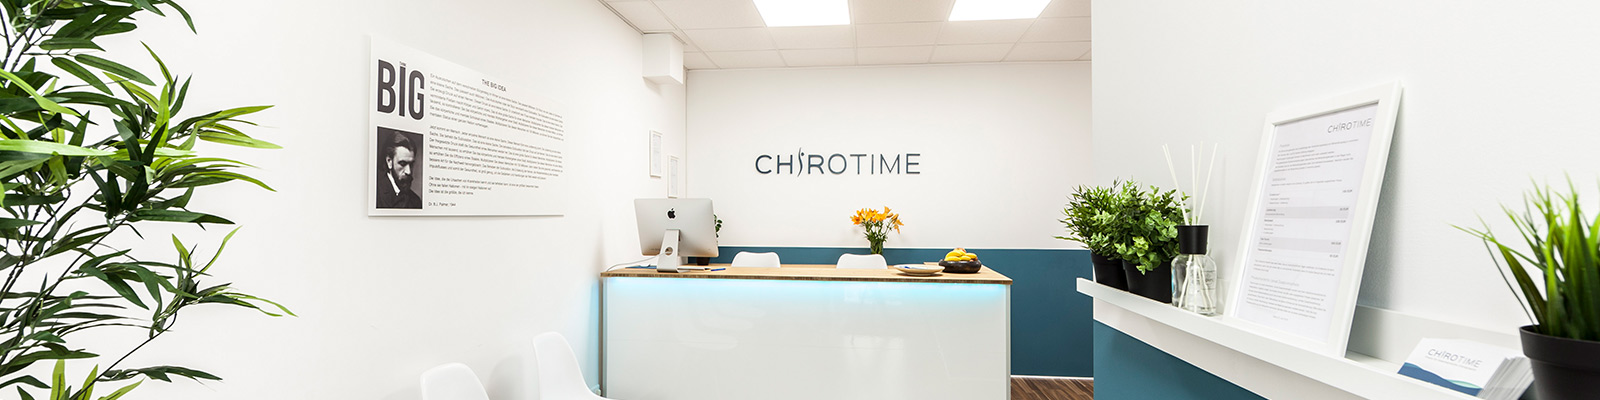 Chirotime Praxis Empfang